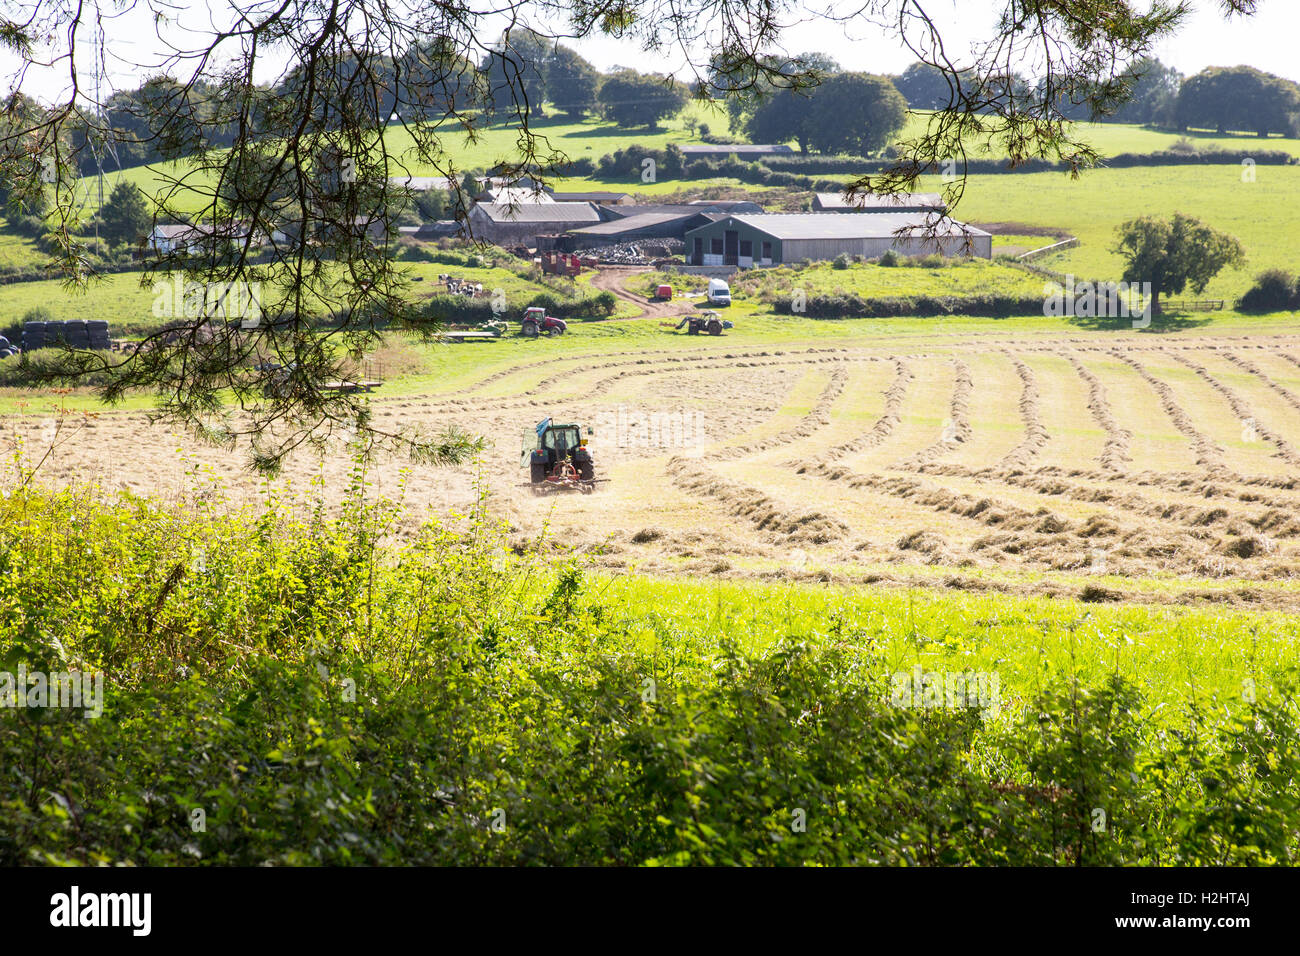 Making hay while the sun shines. - Stock Image